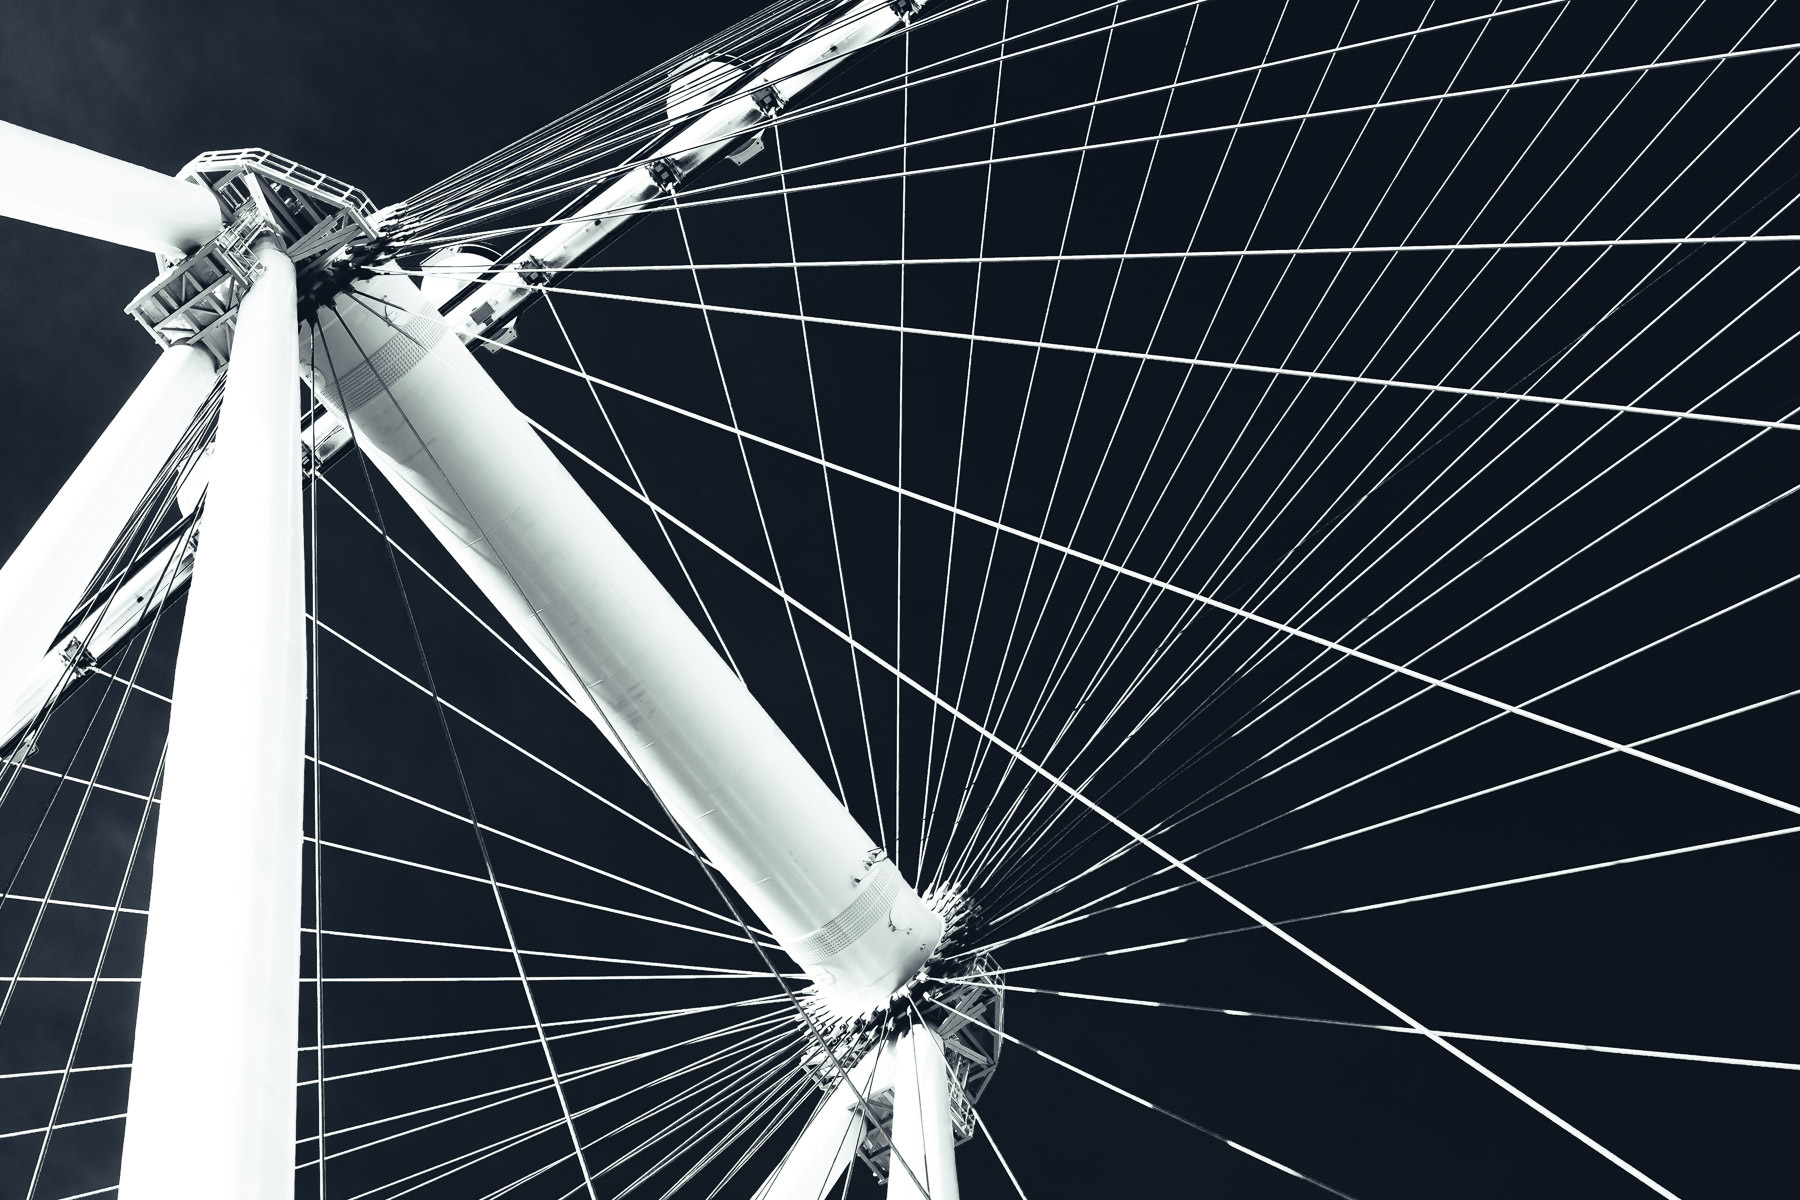 The complex structure of the High Roller observation wheel, Las Vegas.